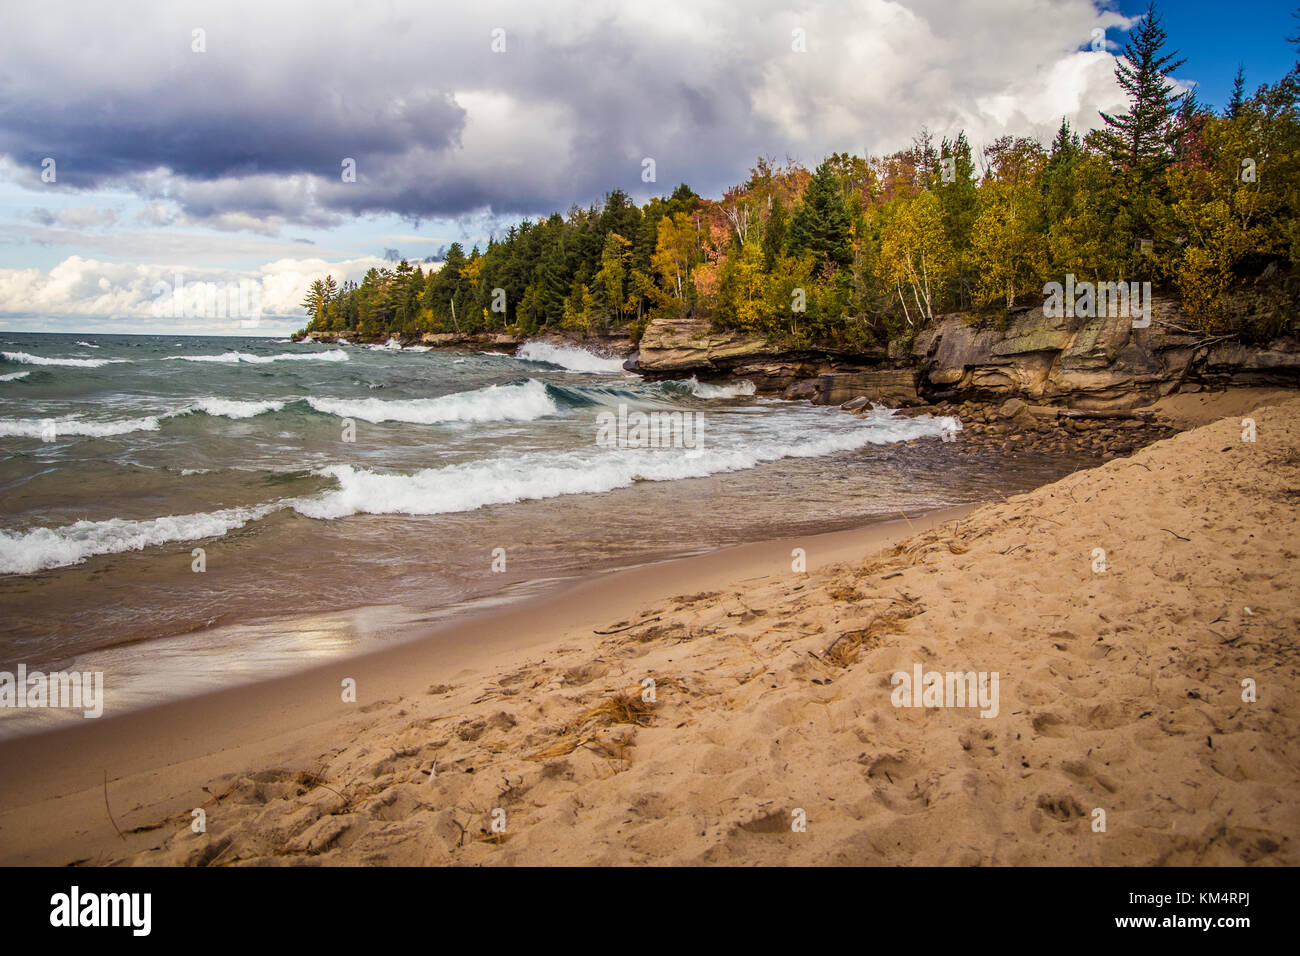 pictured-rocks-national-lakeshore-the-wild-and-rugged-coast-of-lake-KM4RPJ.jpg